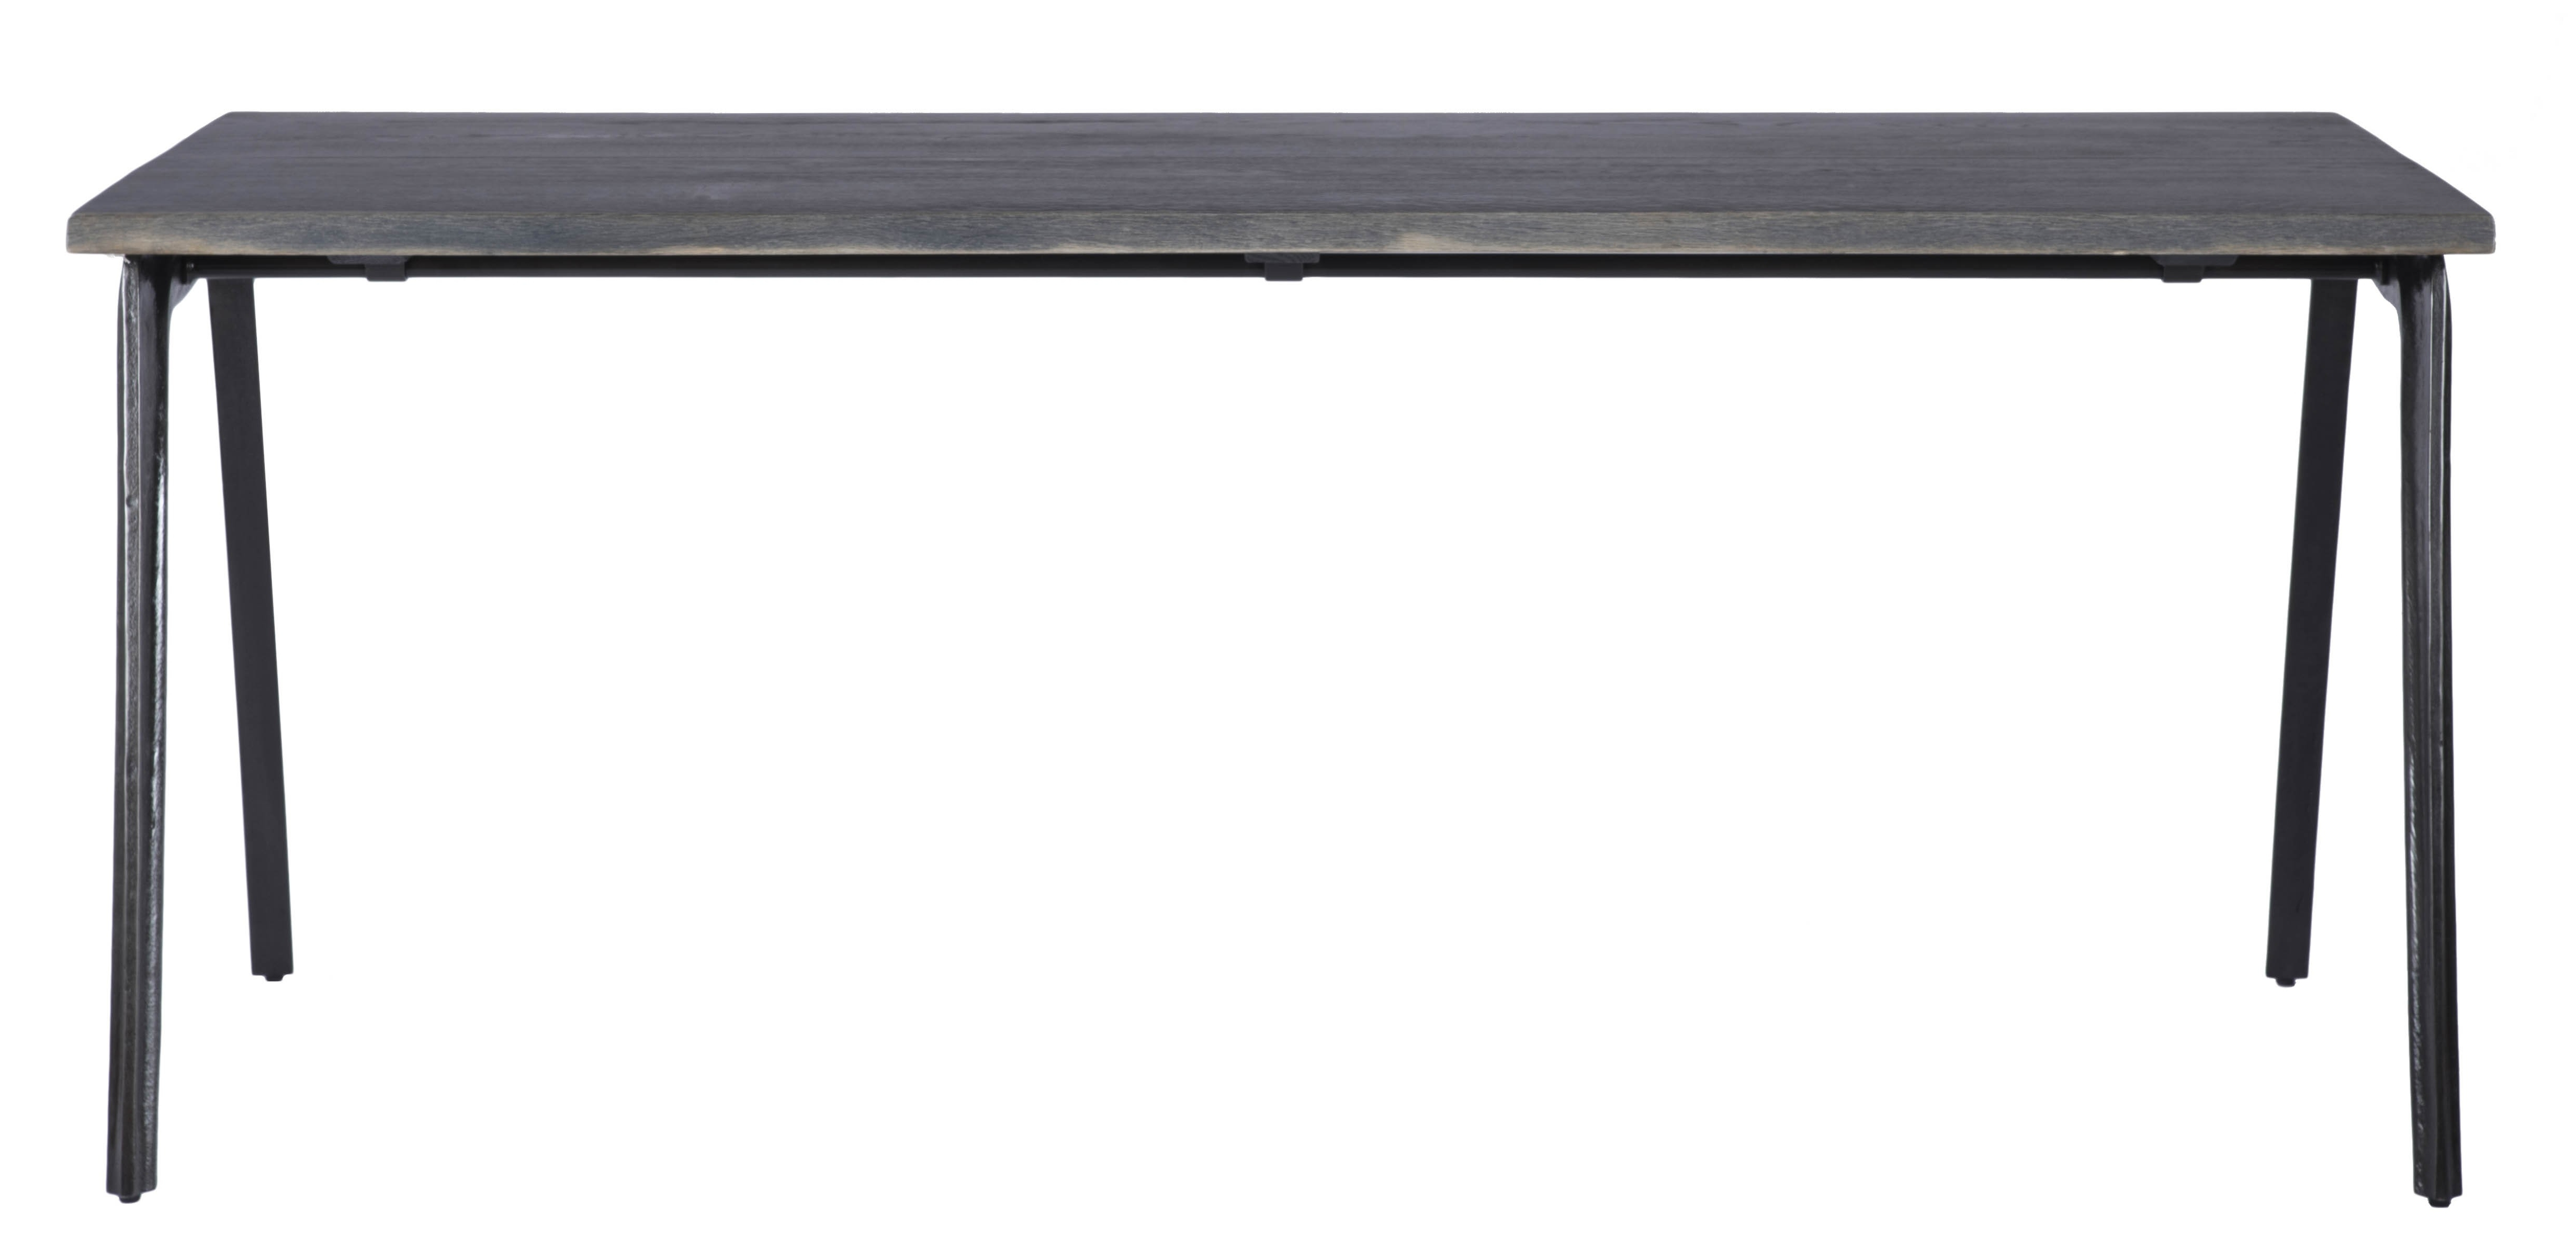 Favorite Toro Dining Table In Ebonized Oak With Regard To Helms Rectangle Dining Tables (View 12 of 25)